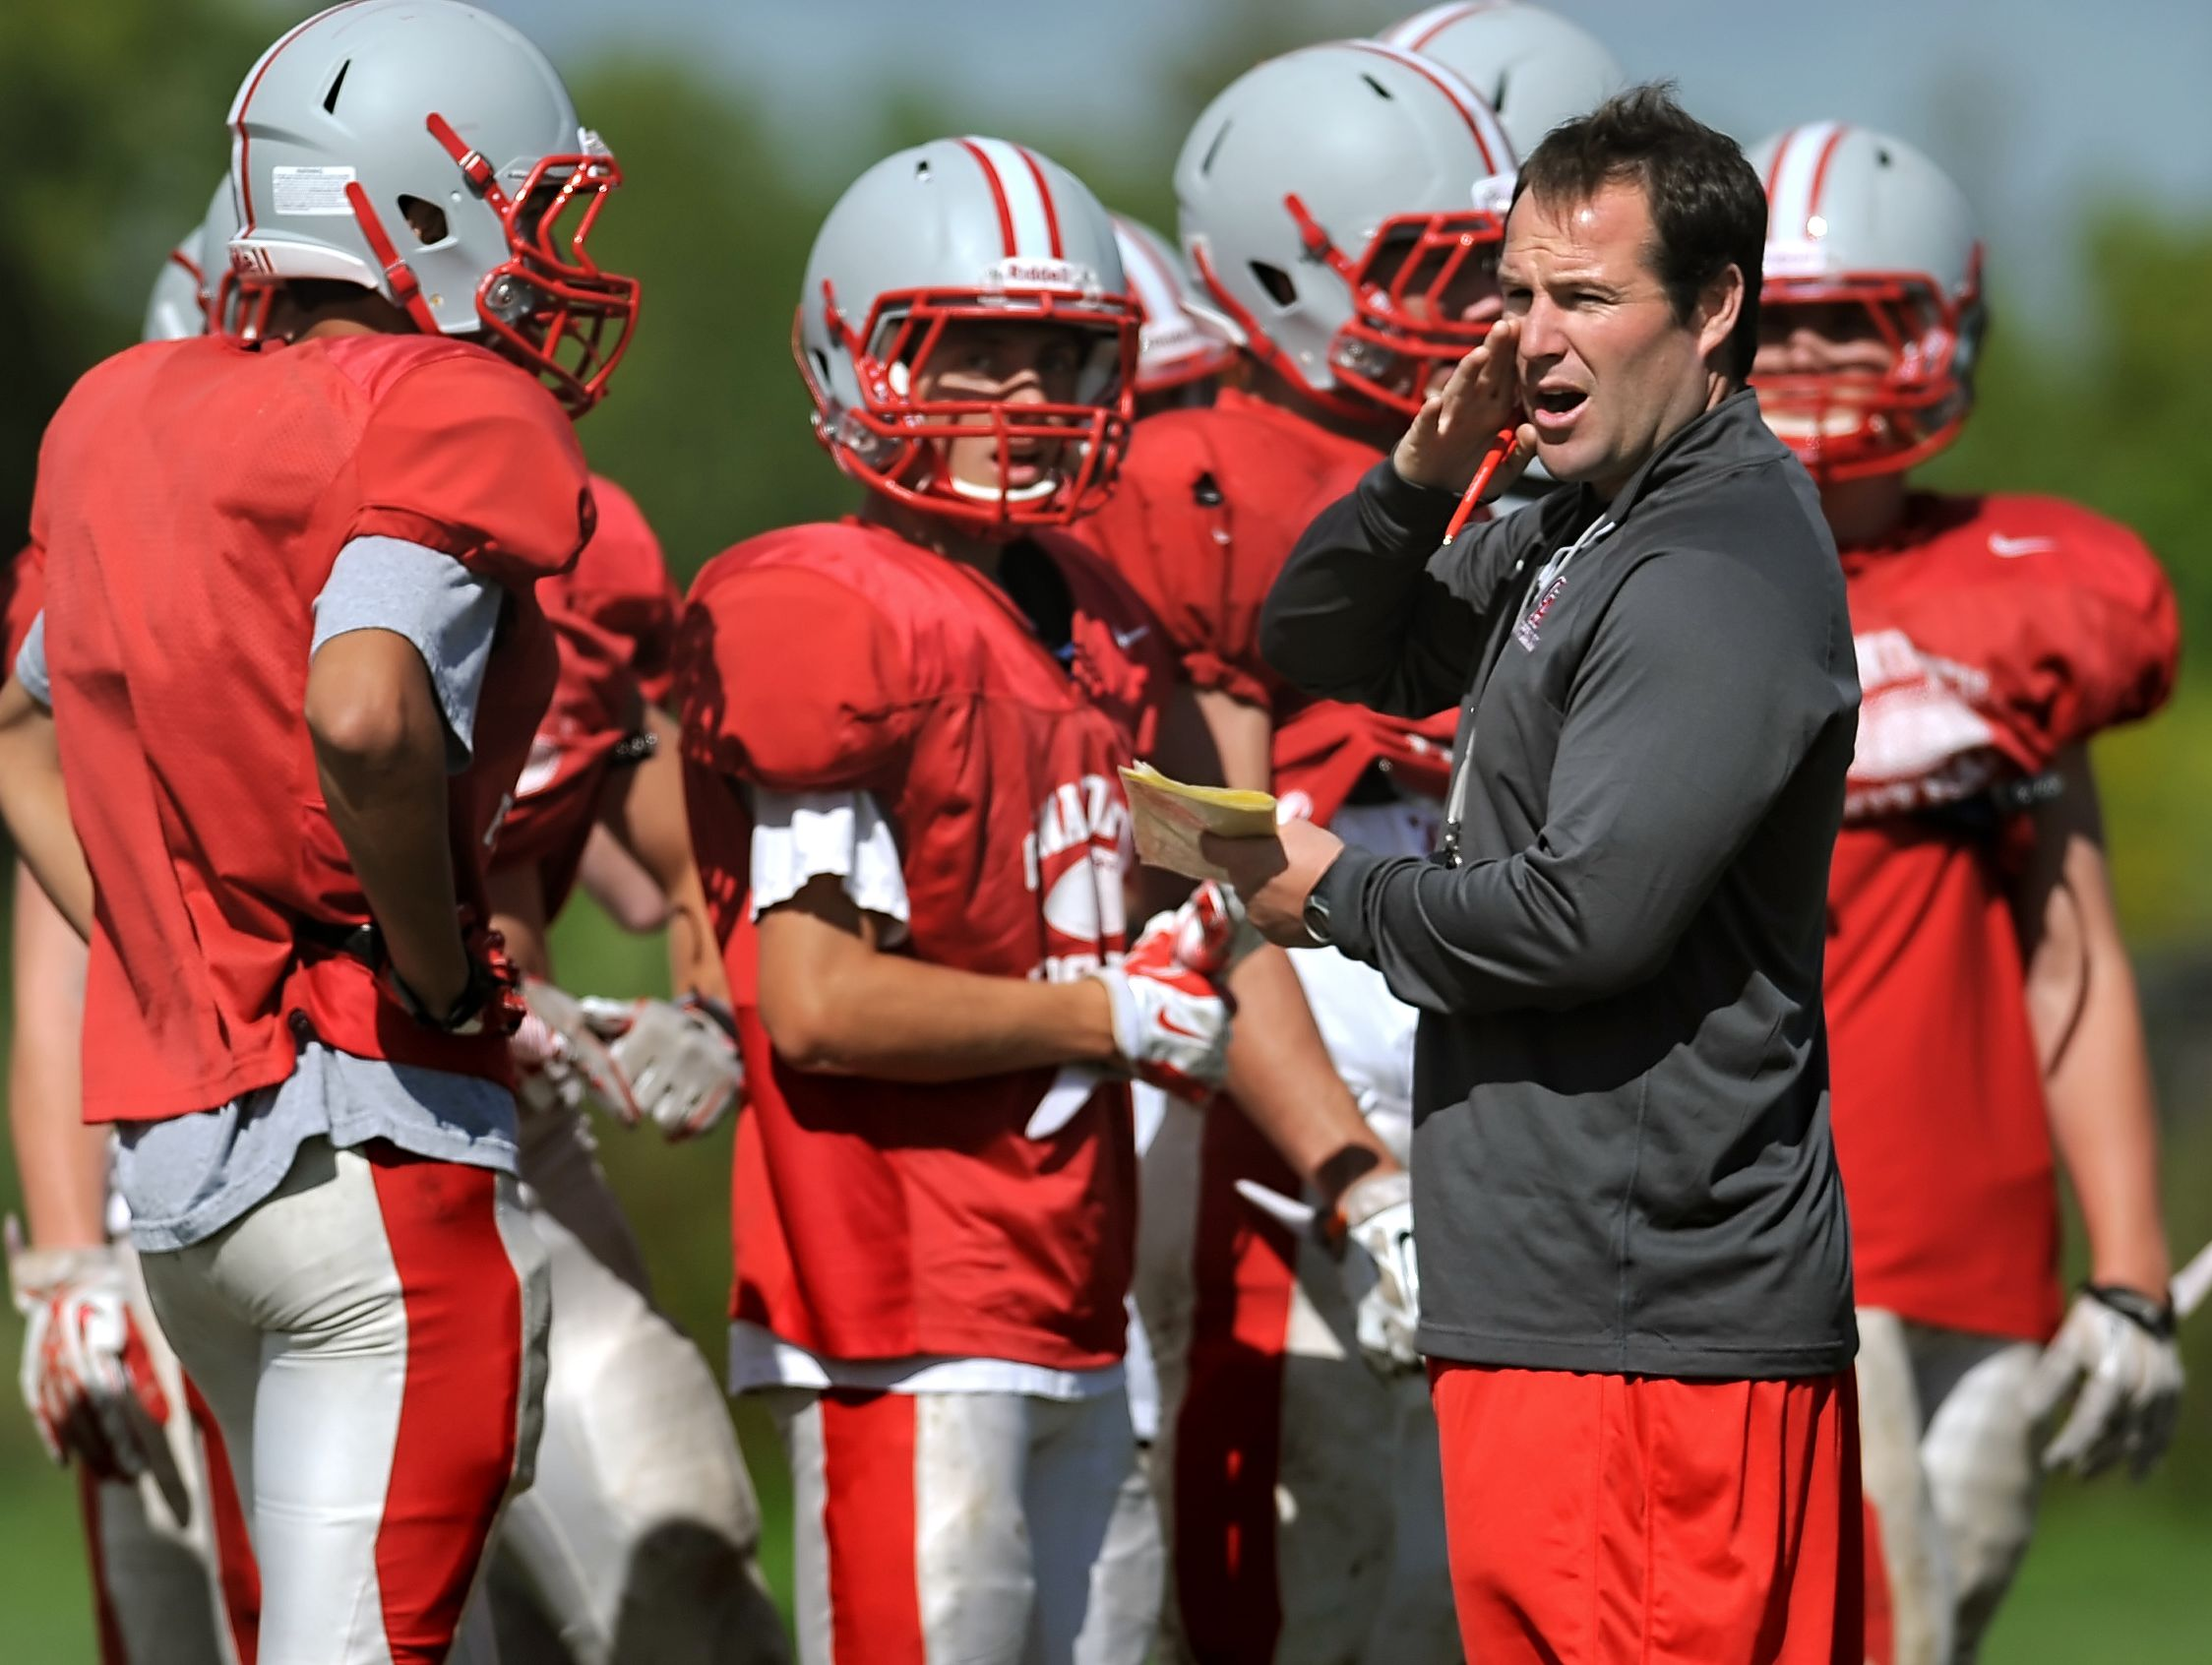 Canandaigua head coach Jeff Welch, right, calls to the sideline as he runs preseason football practice at Canandaigua Academy on Thursday, August 28, 2014.